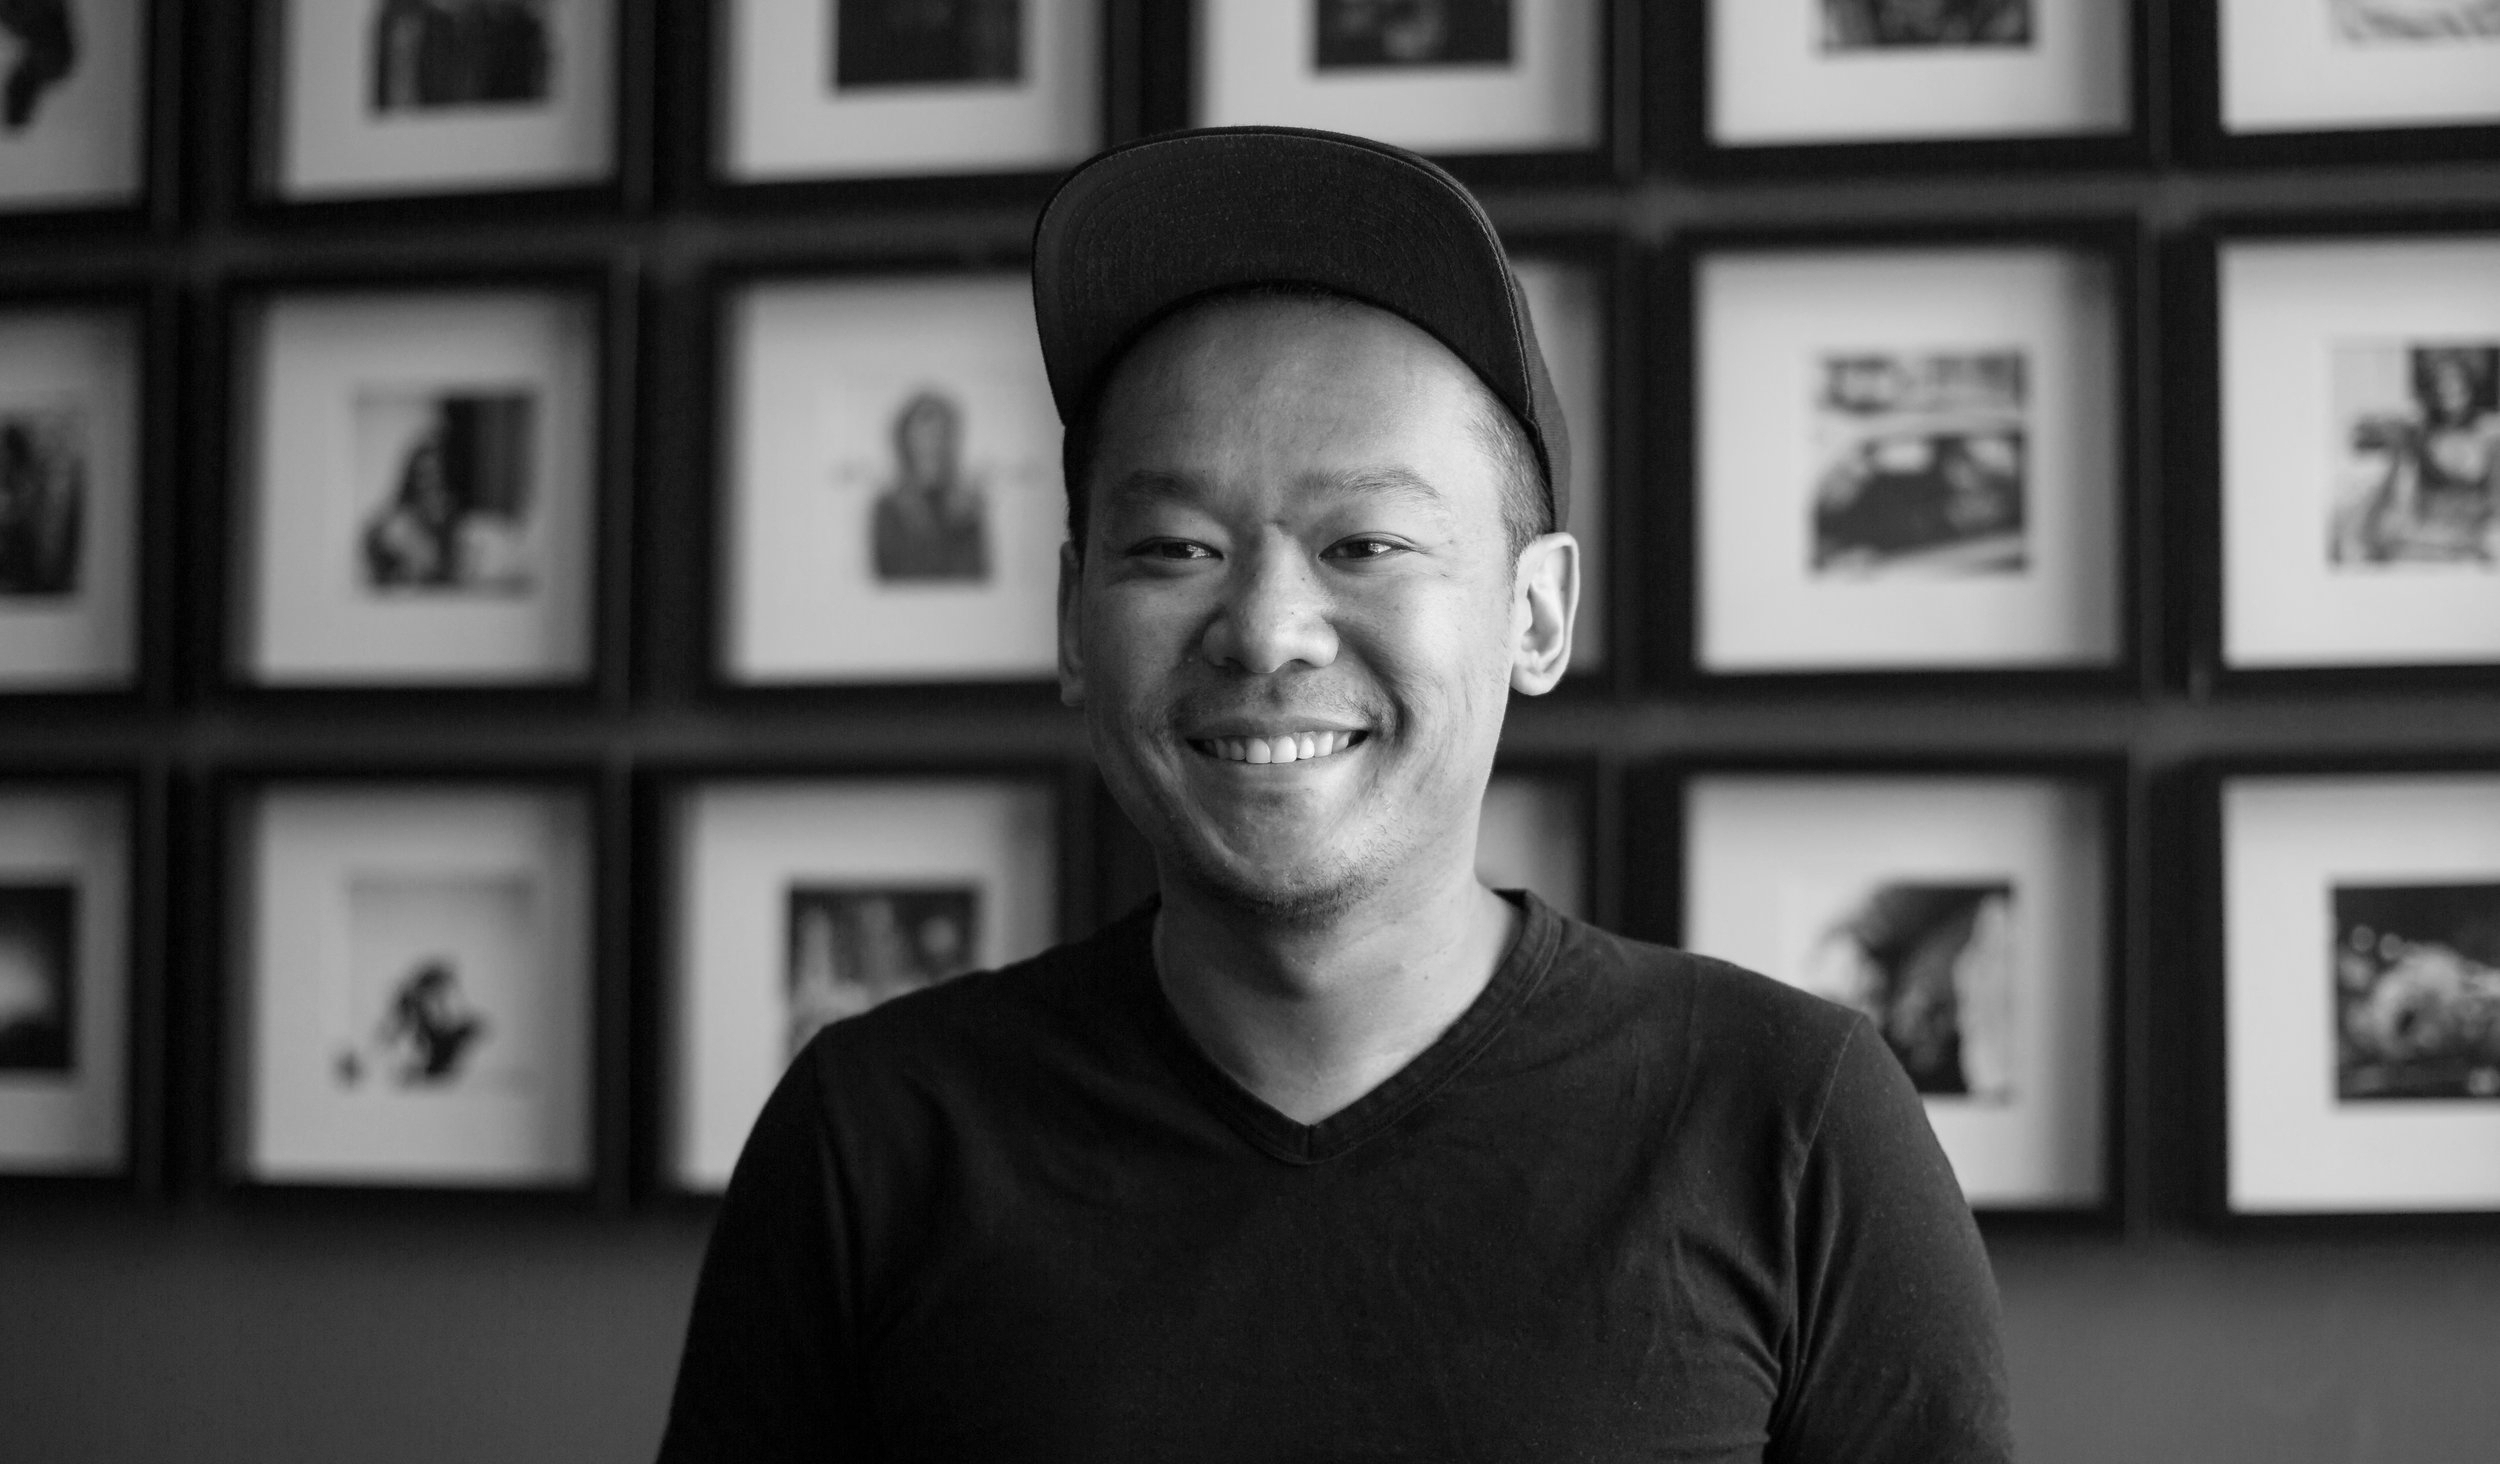 Peter Huang   Peter is a director and screenwriter based in Toronto, ON.A former creative executive, his work has appeared on many best-of lists and received numerous awards and nominations, including the JUNO Awards,MuchMusic Video Awards, MTVU Woodies, UK MVAs, and the Young Director Award in Cannes.In 2015, Peter was selected to be a part of the Toronto International Film Festival's Emerging Directors Showcase. His short film 5 FILMS ABOUT TECHNOLOGY, premiered at TIFF 2016.